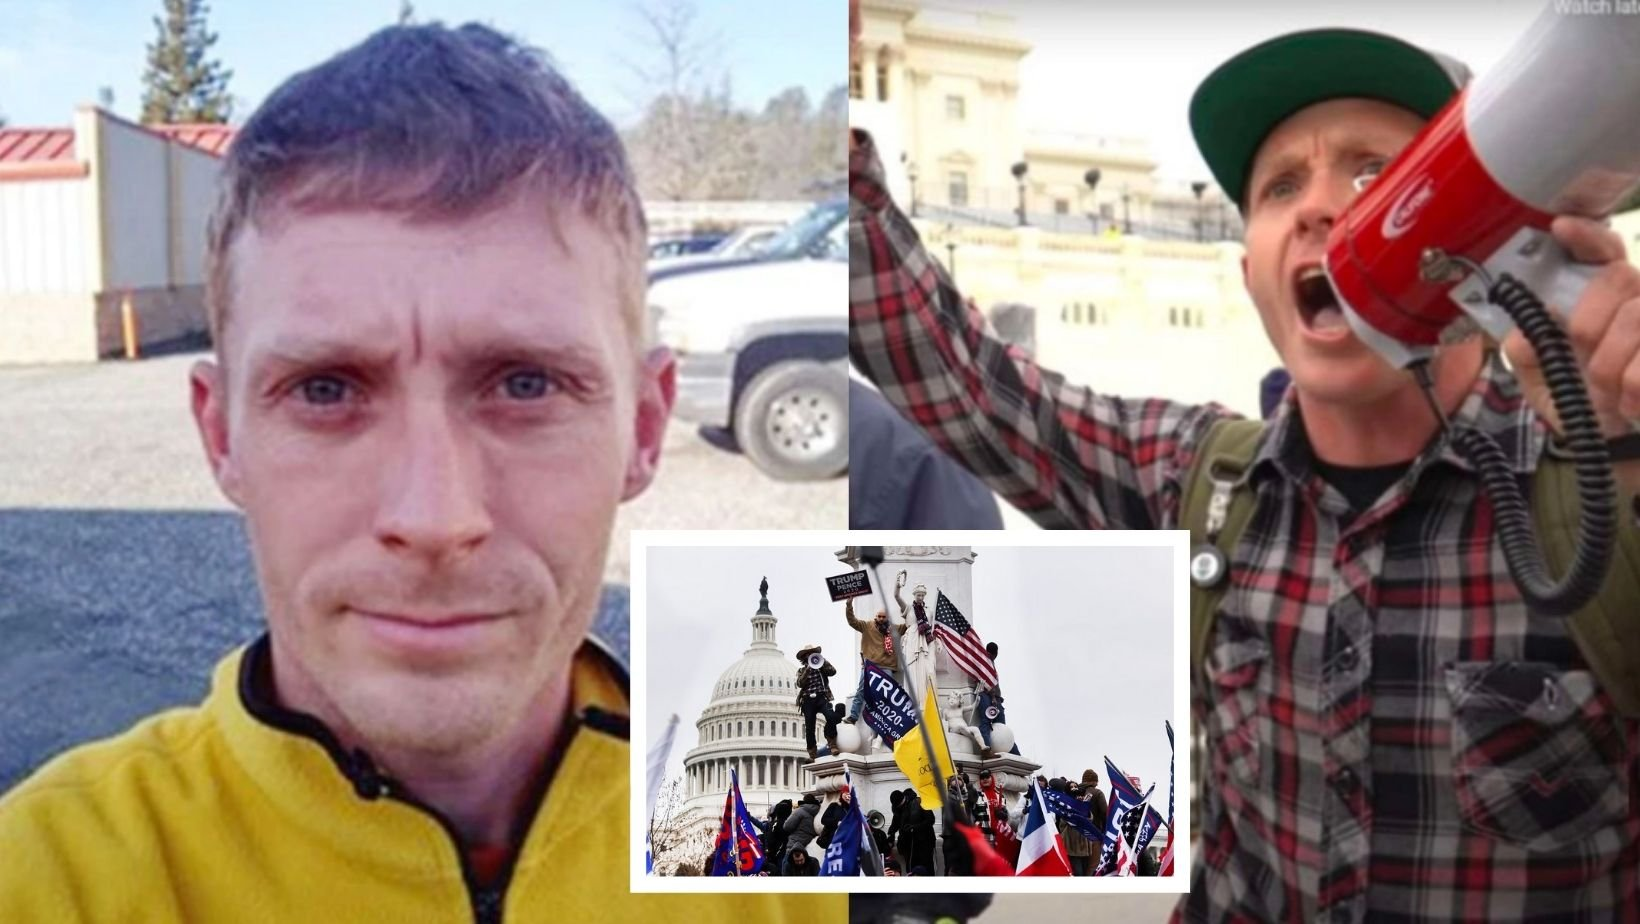 1 27.jpg?resize=1200,630 - Capitol Rioter Who Heckled Police For Protecting Pedos Was Jailed For Abusing A Minor